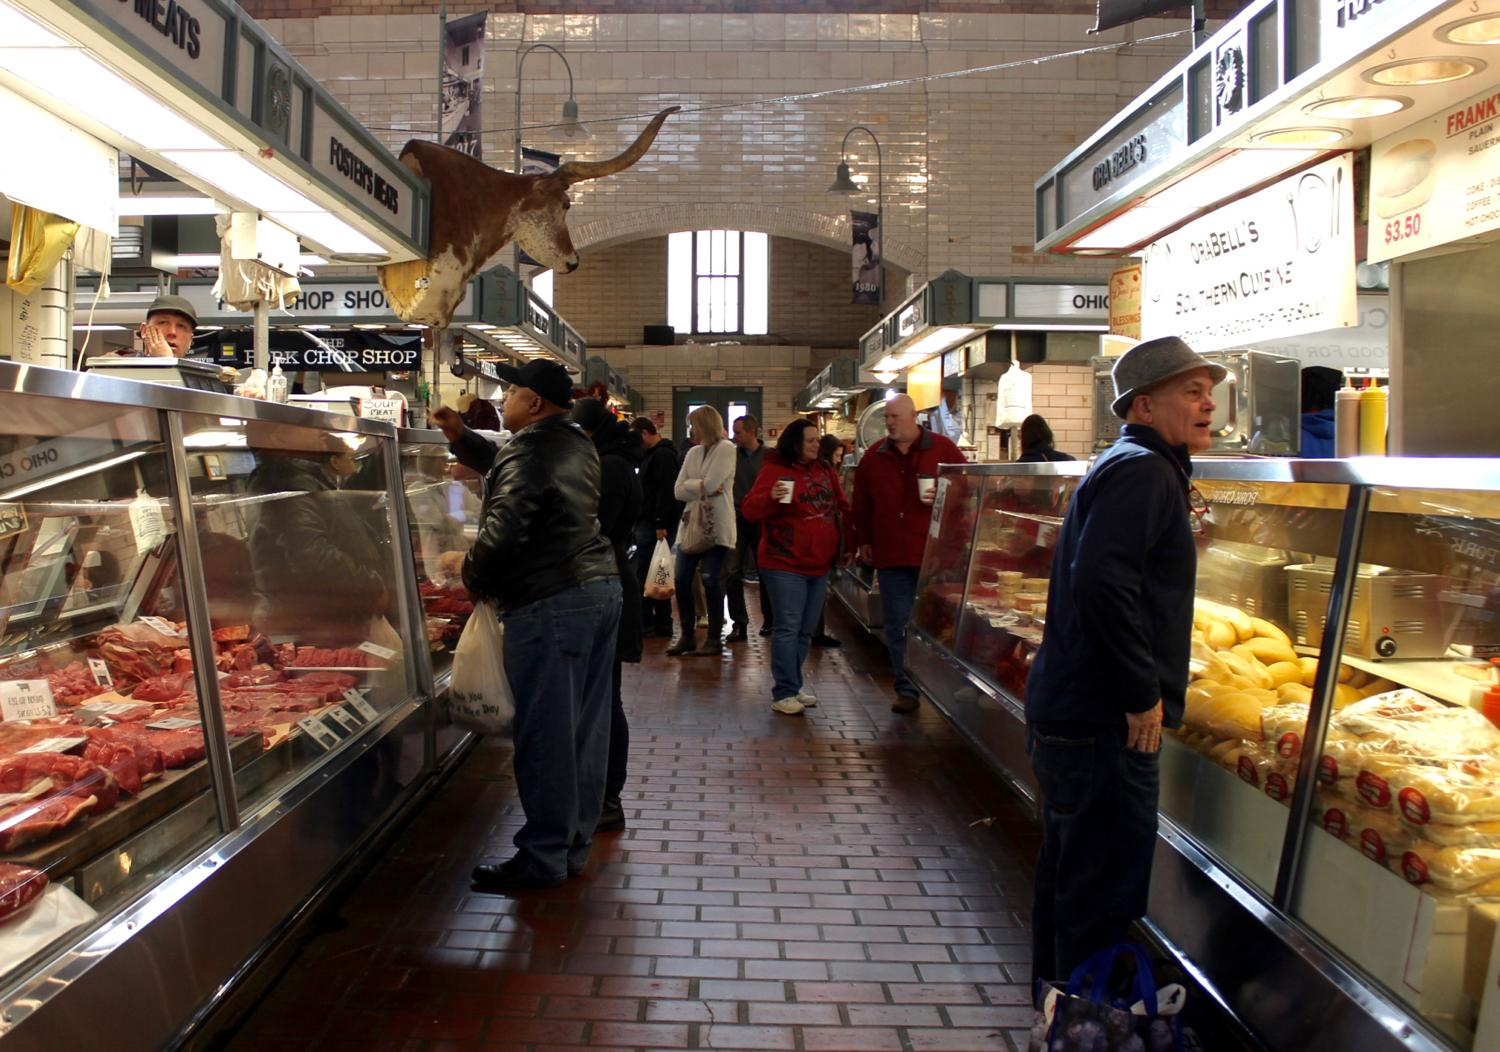 "<p>Cleveland's West Side Market is the city's oldest publicly-owned market. Its origins date back to 1840 when the market began as an ""open-air marketplace""{&amp;nbsp;}on land donated by two Ohio City landowners, Josiah Barber and Richard Lord. The market opened to the public in 1912 and is now home to over 100 different vendors selling a diverse selection of cuisine, including fresh meat, seafood, vegetables, cheese and ready-to-eat foods. ADDRESS:{&amp;nbsp;}1979 West 25th{&amp;nbsp;}Street, Cleveland, OH 44113 / Image: Rose Brewington // Published: 11.22.17</p>"